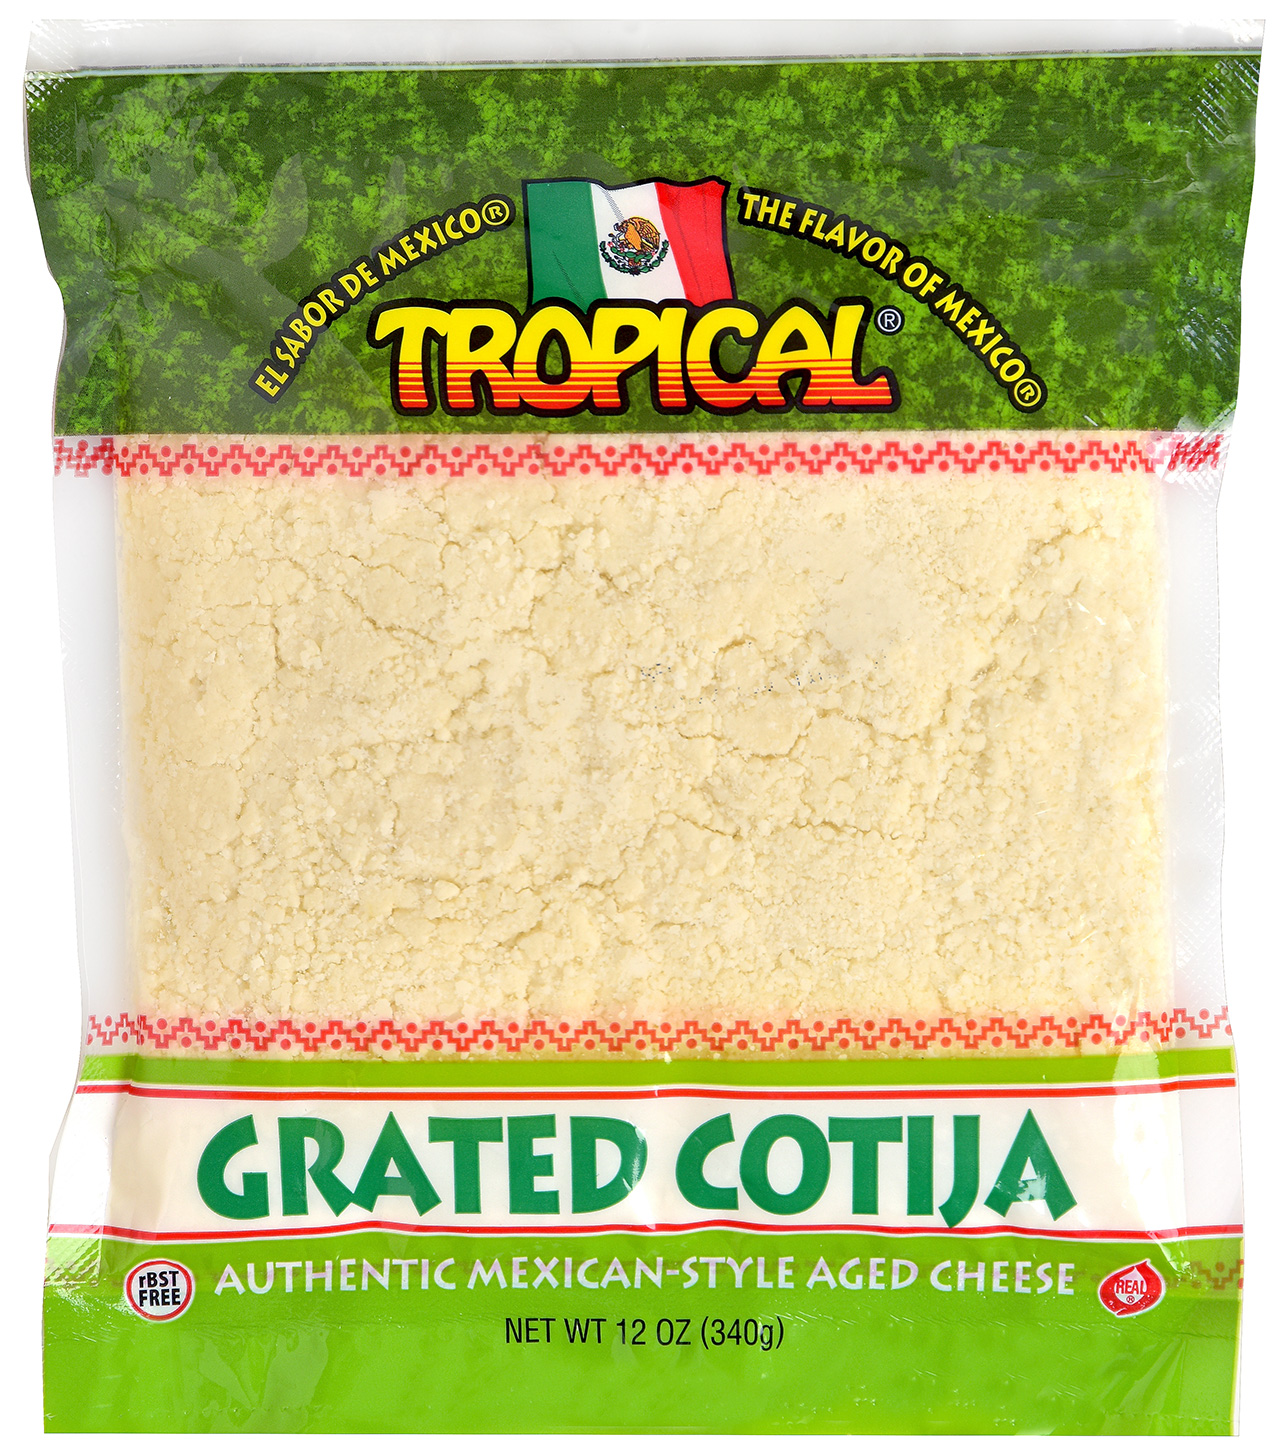 Grated Cotija Cheese Tropical Cheese